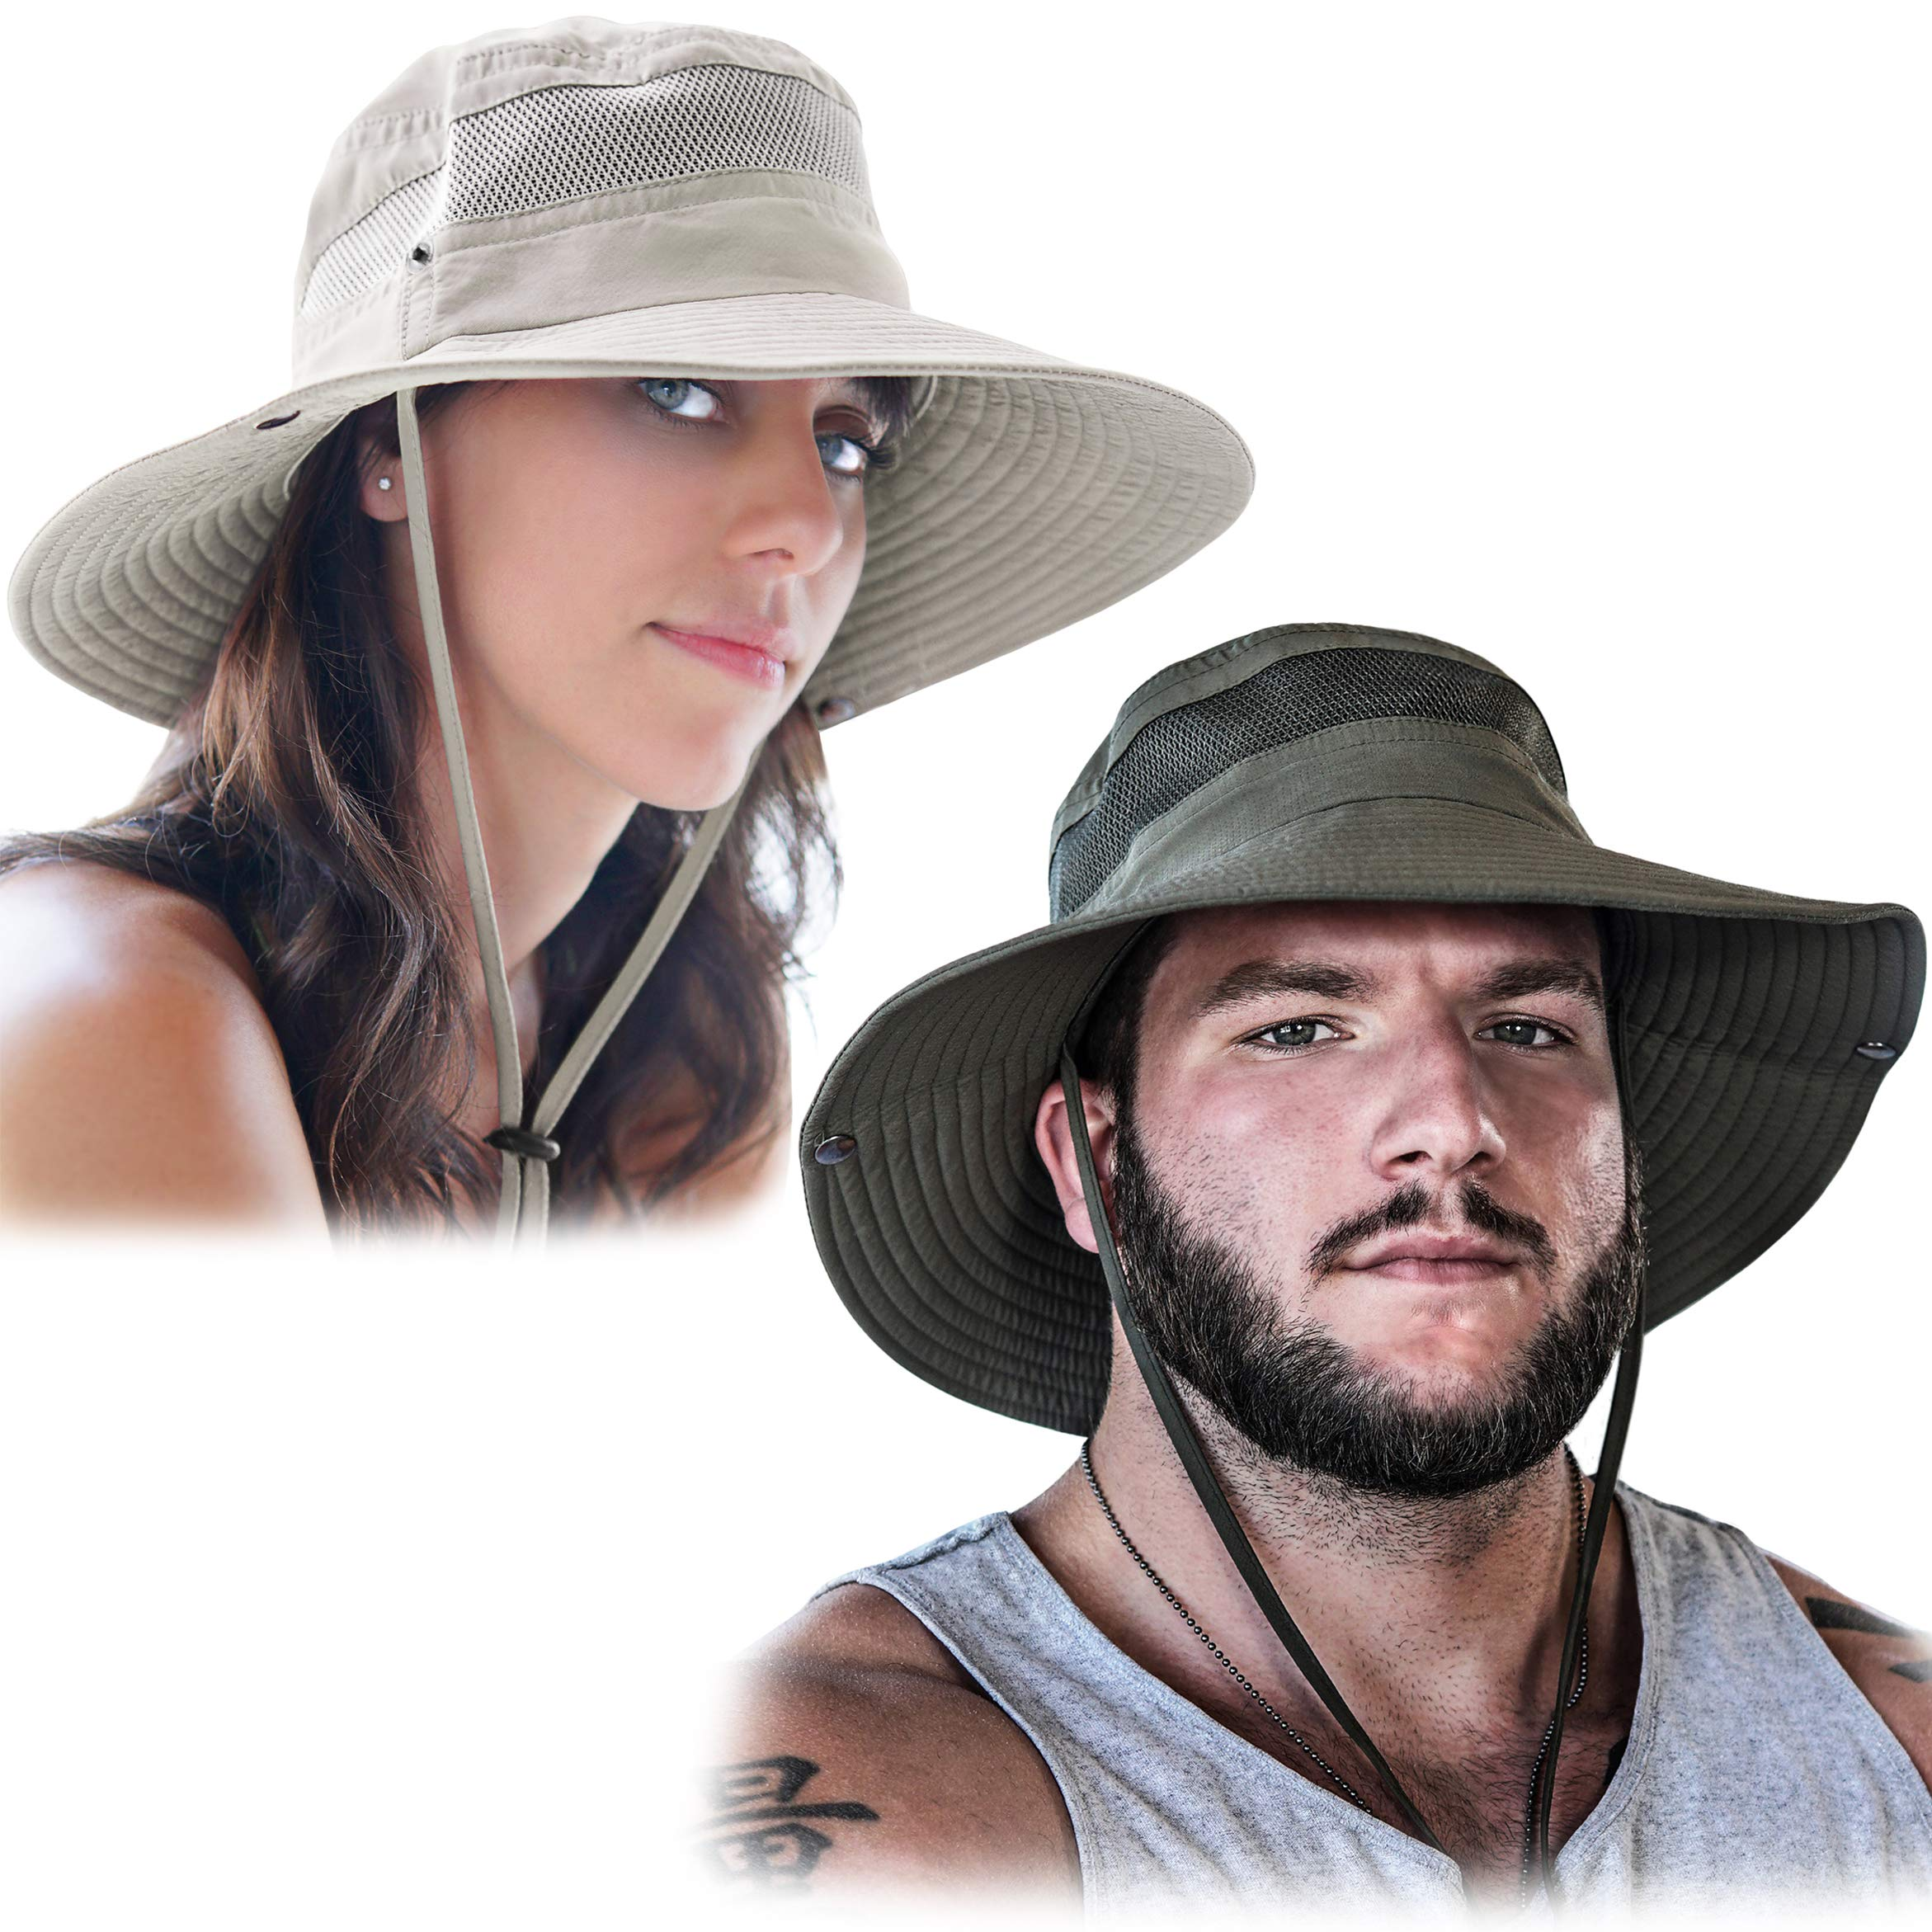 GearTOP Fishing Hat and Safari Cap with Sun Protection   Premium Hats for Men and Women (Army Green and Beige (2 Pack), 2 Pack) by GearTOP